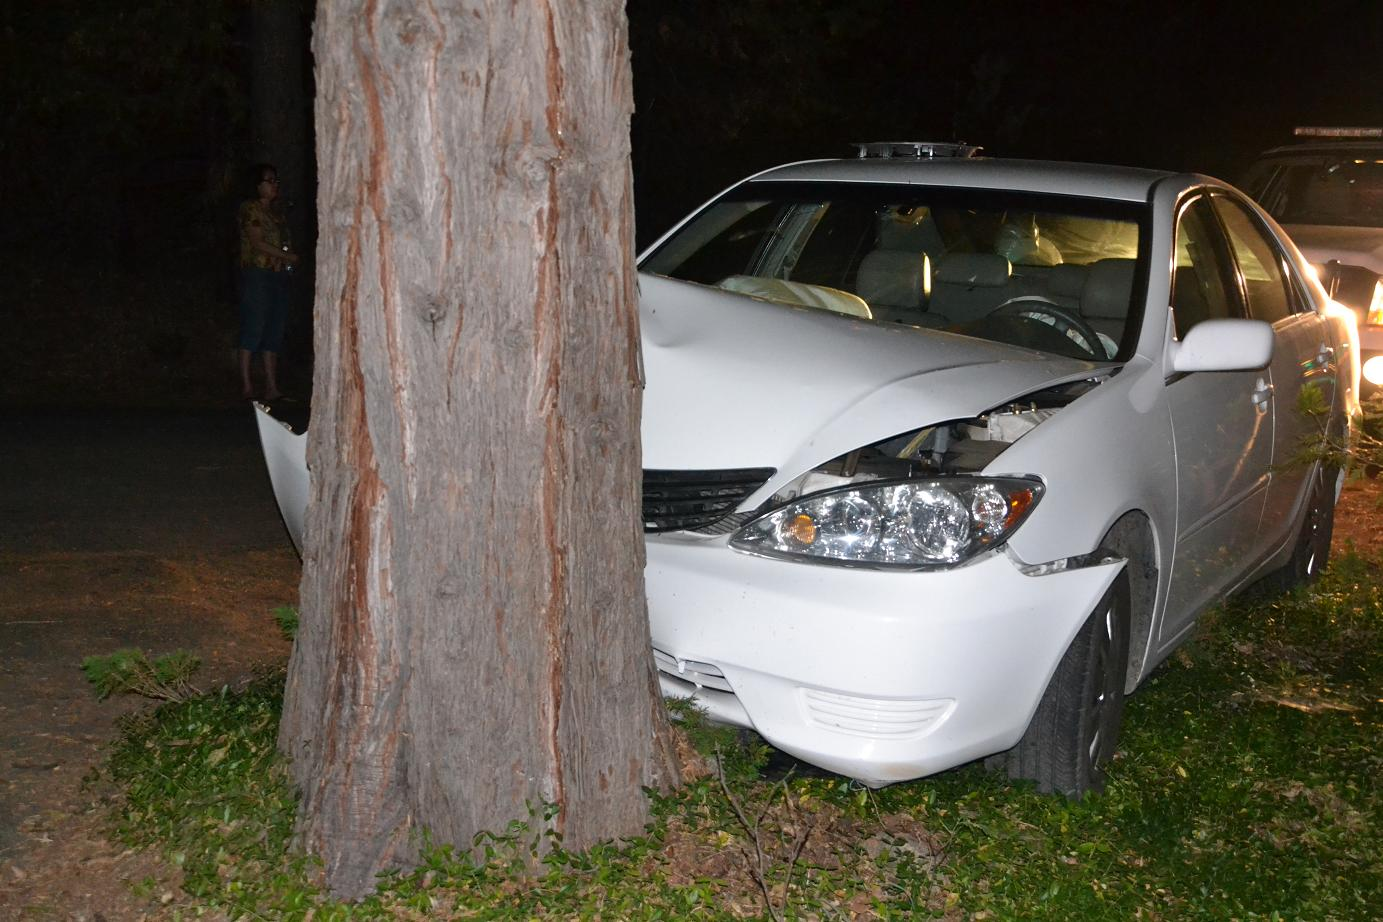 I Crashed My Car Into A Tree